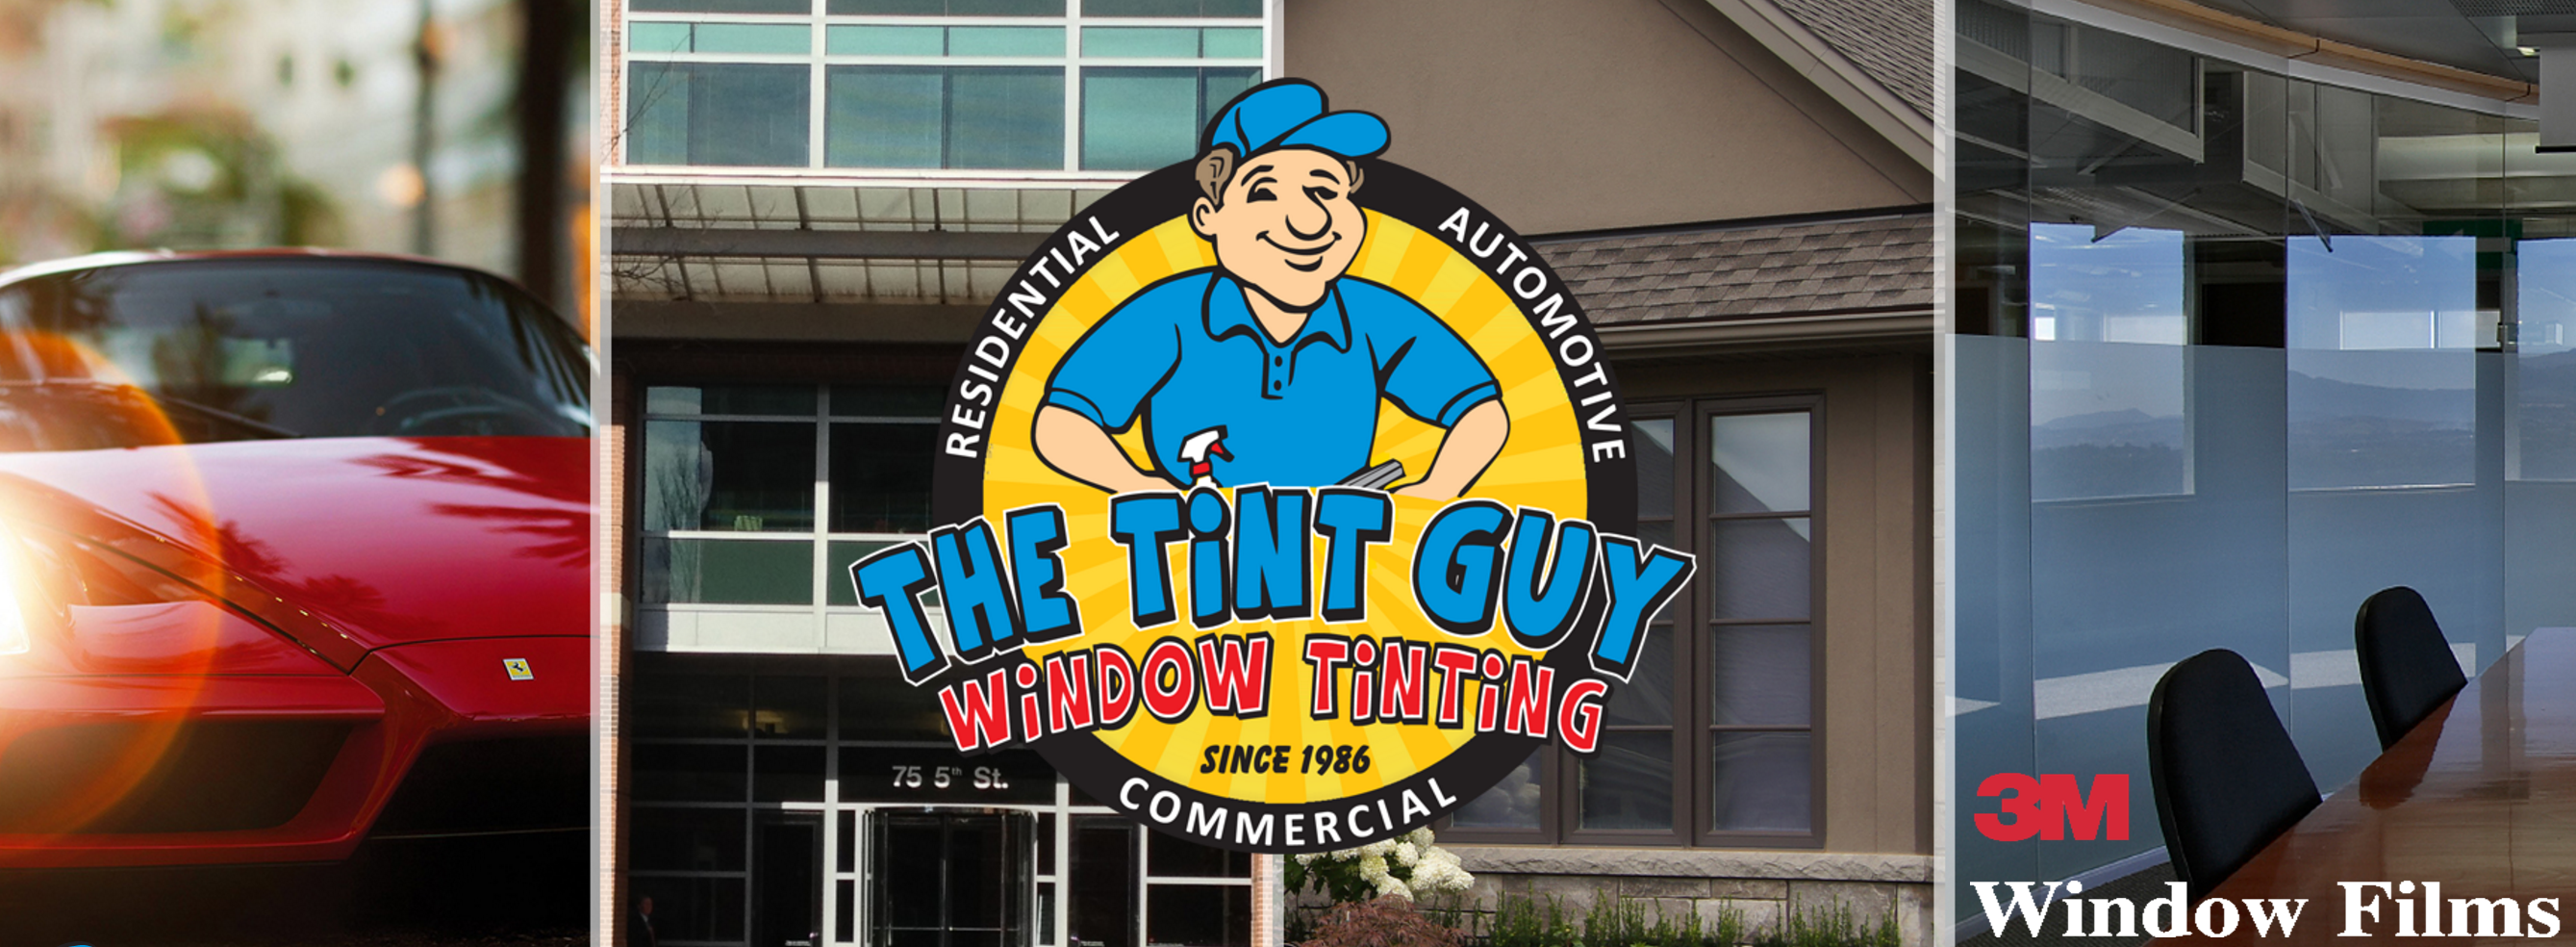 The Tint Guy Window Tinting reviews | Auto Glass Services at 10262 Main St - Woodstock GA